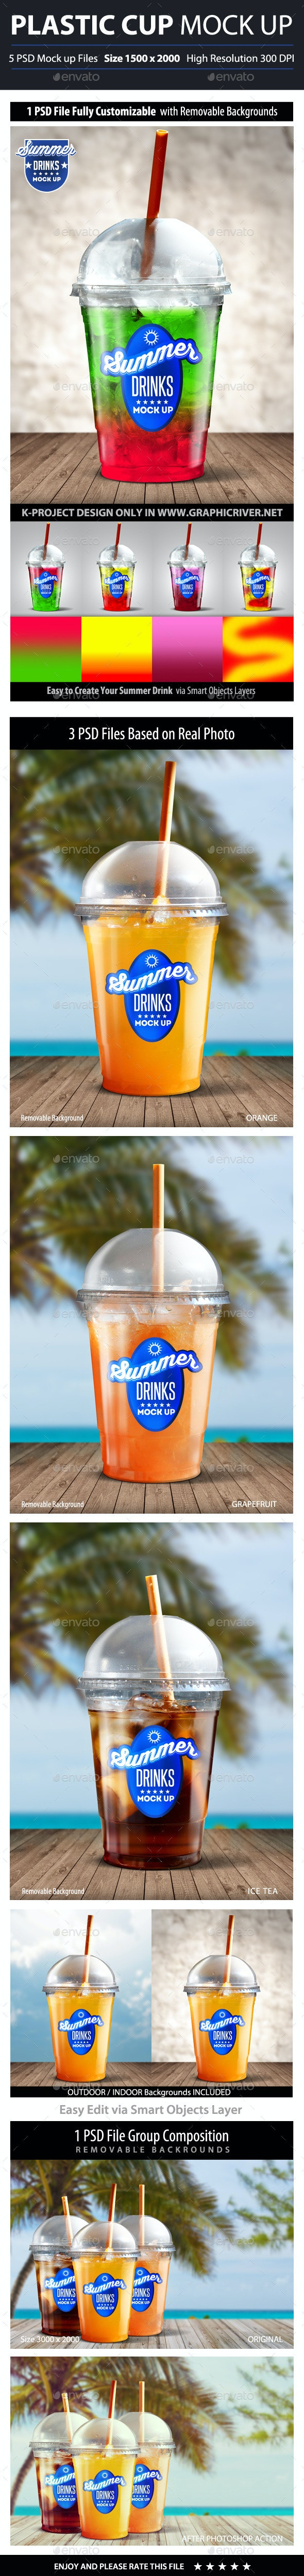 Summer Drinks Plastic Cup Mock Up - Product Mock-Ups Graphics